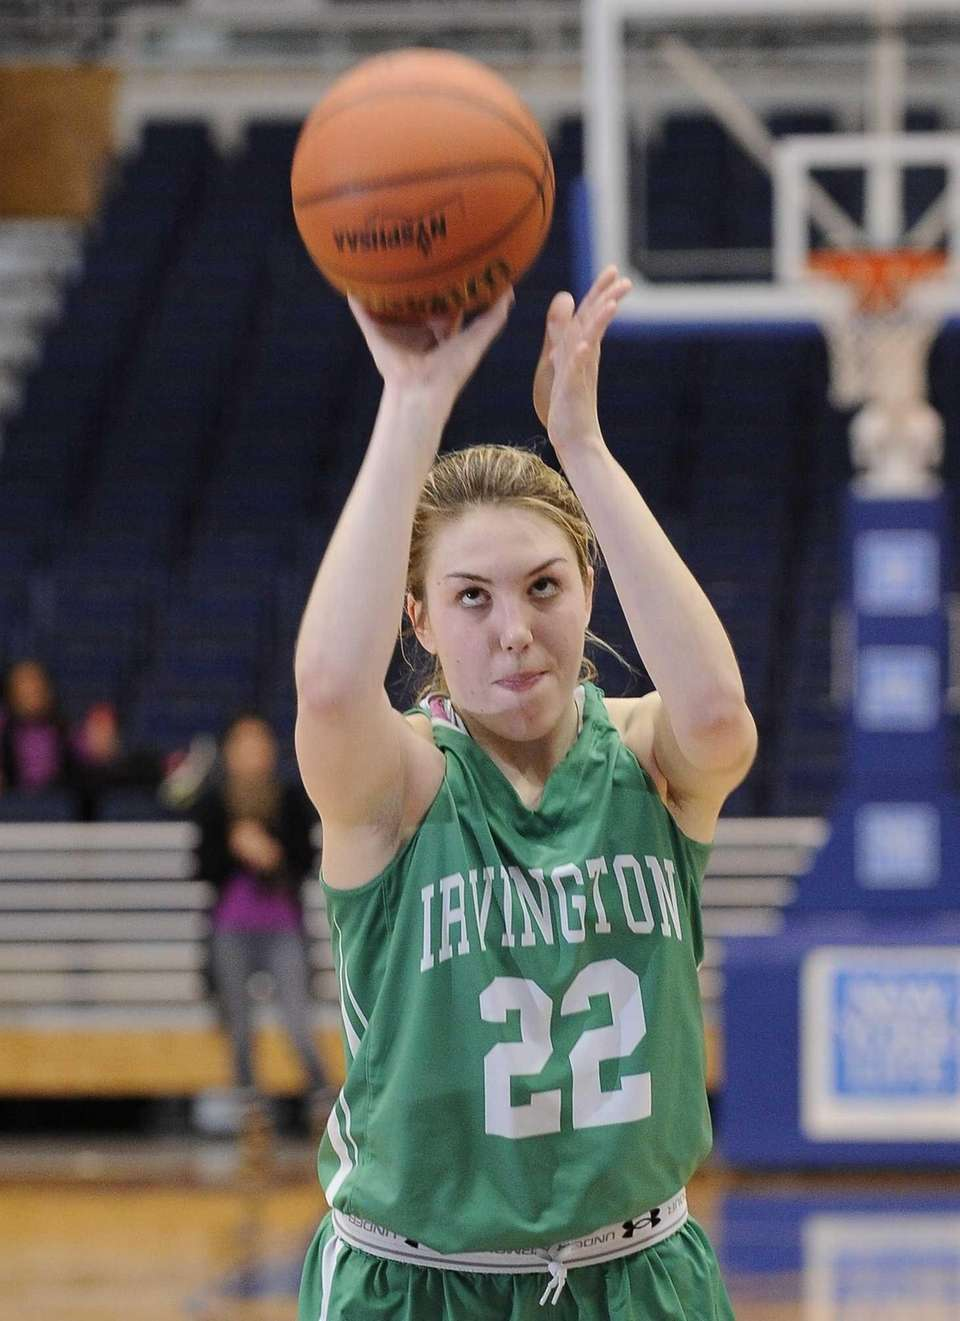 Irvington's Lexi Martins shoots a free throw against